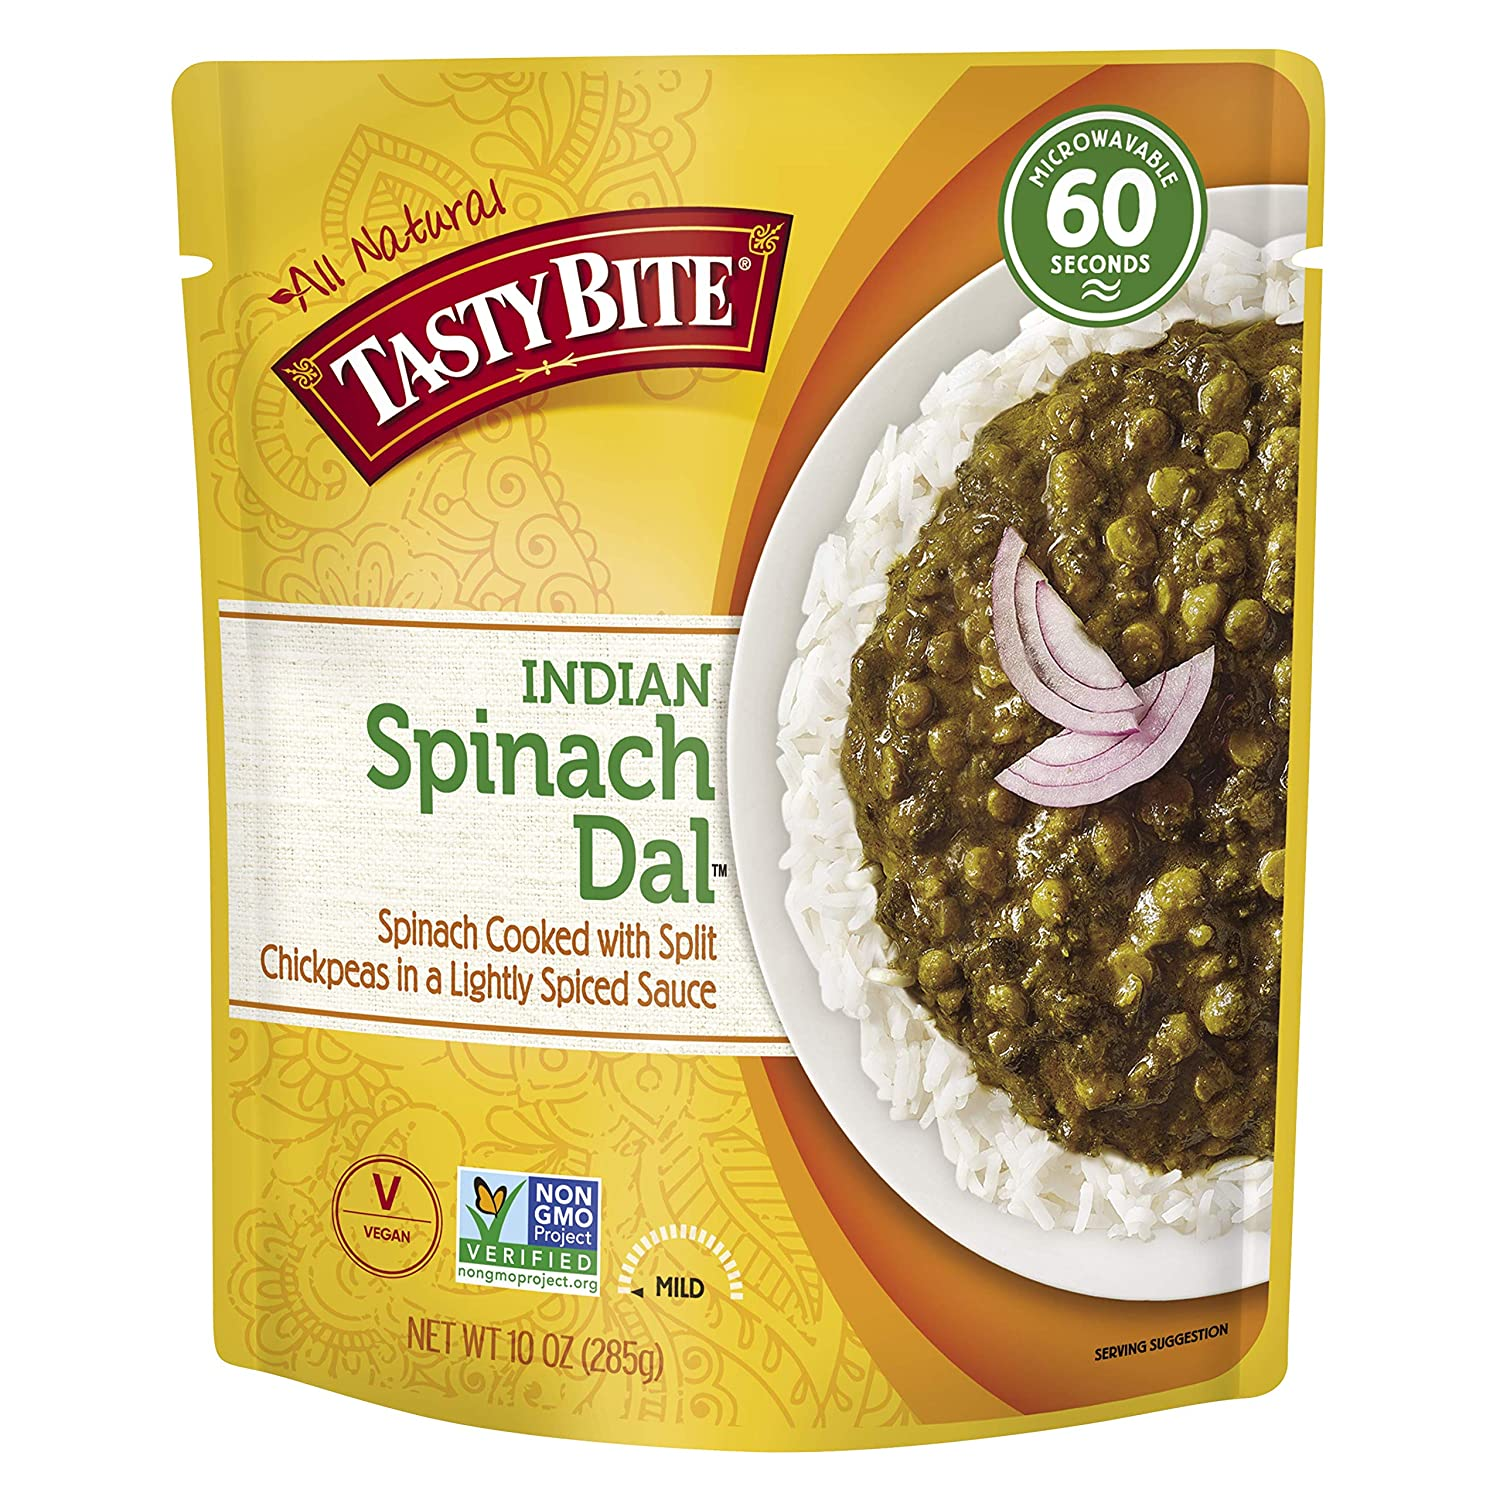 Tasty Bite Spinach Dal Microwaveable Ready to Eat Entrée, 10 Ounce Pouches (Pack of 6)